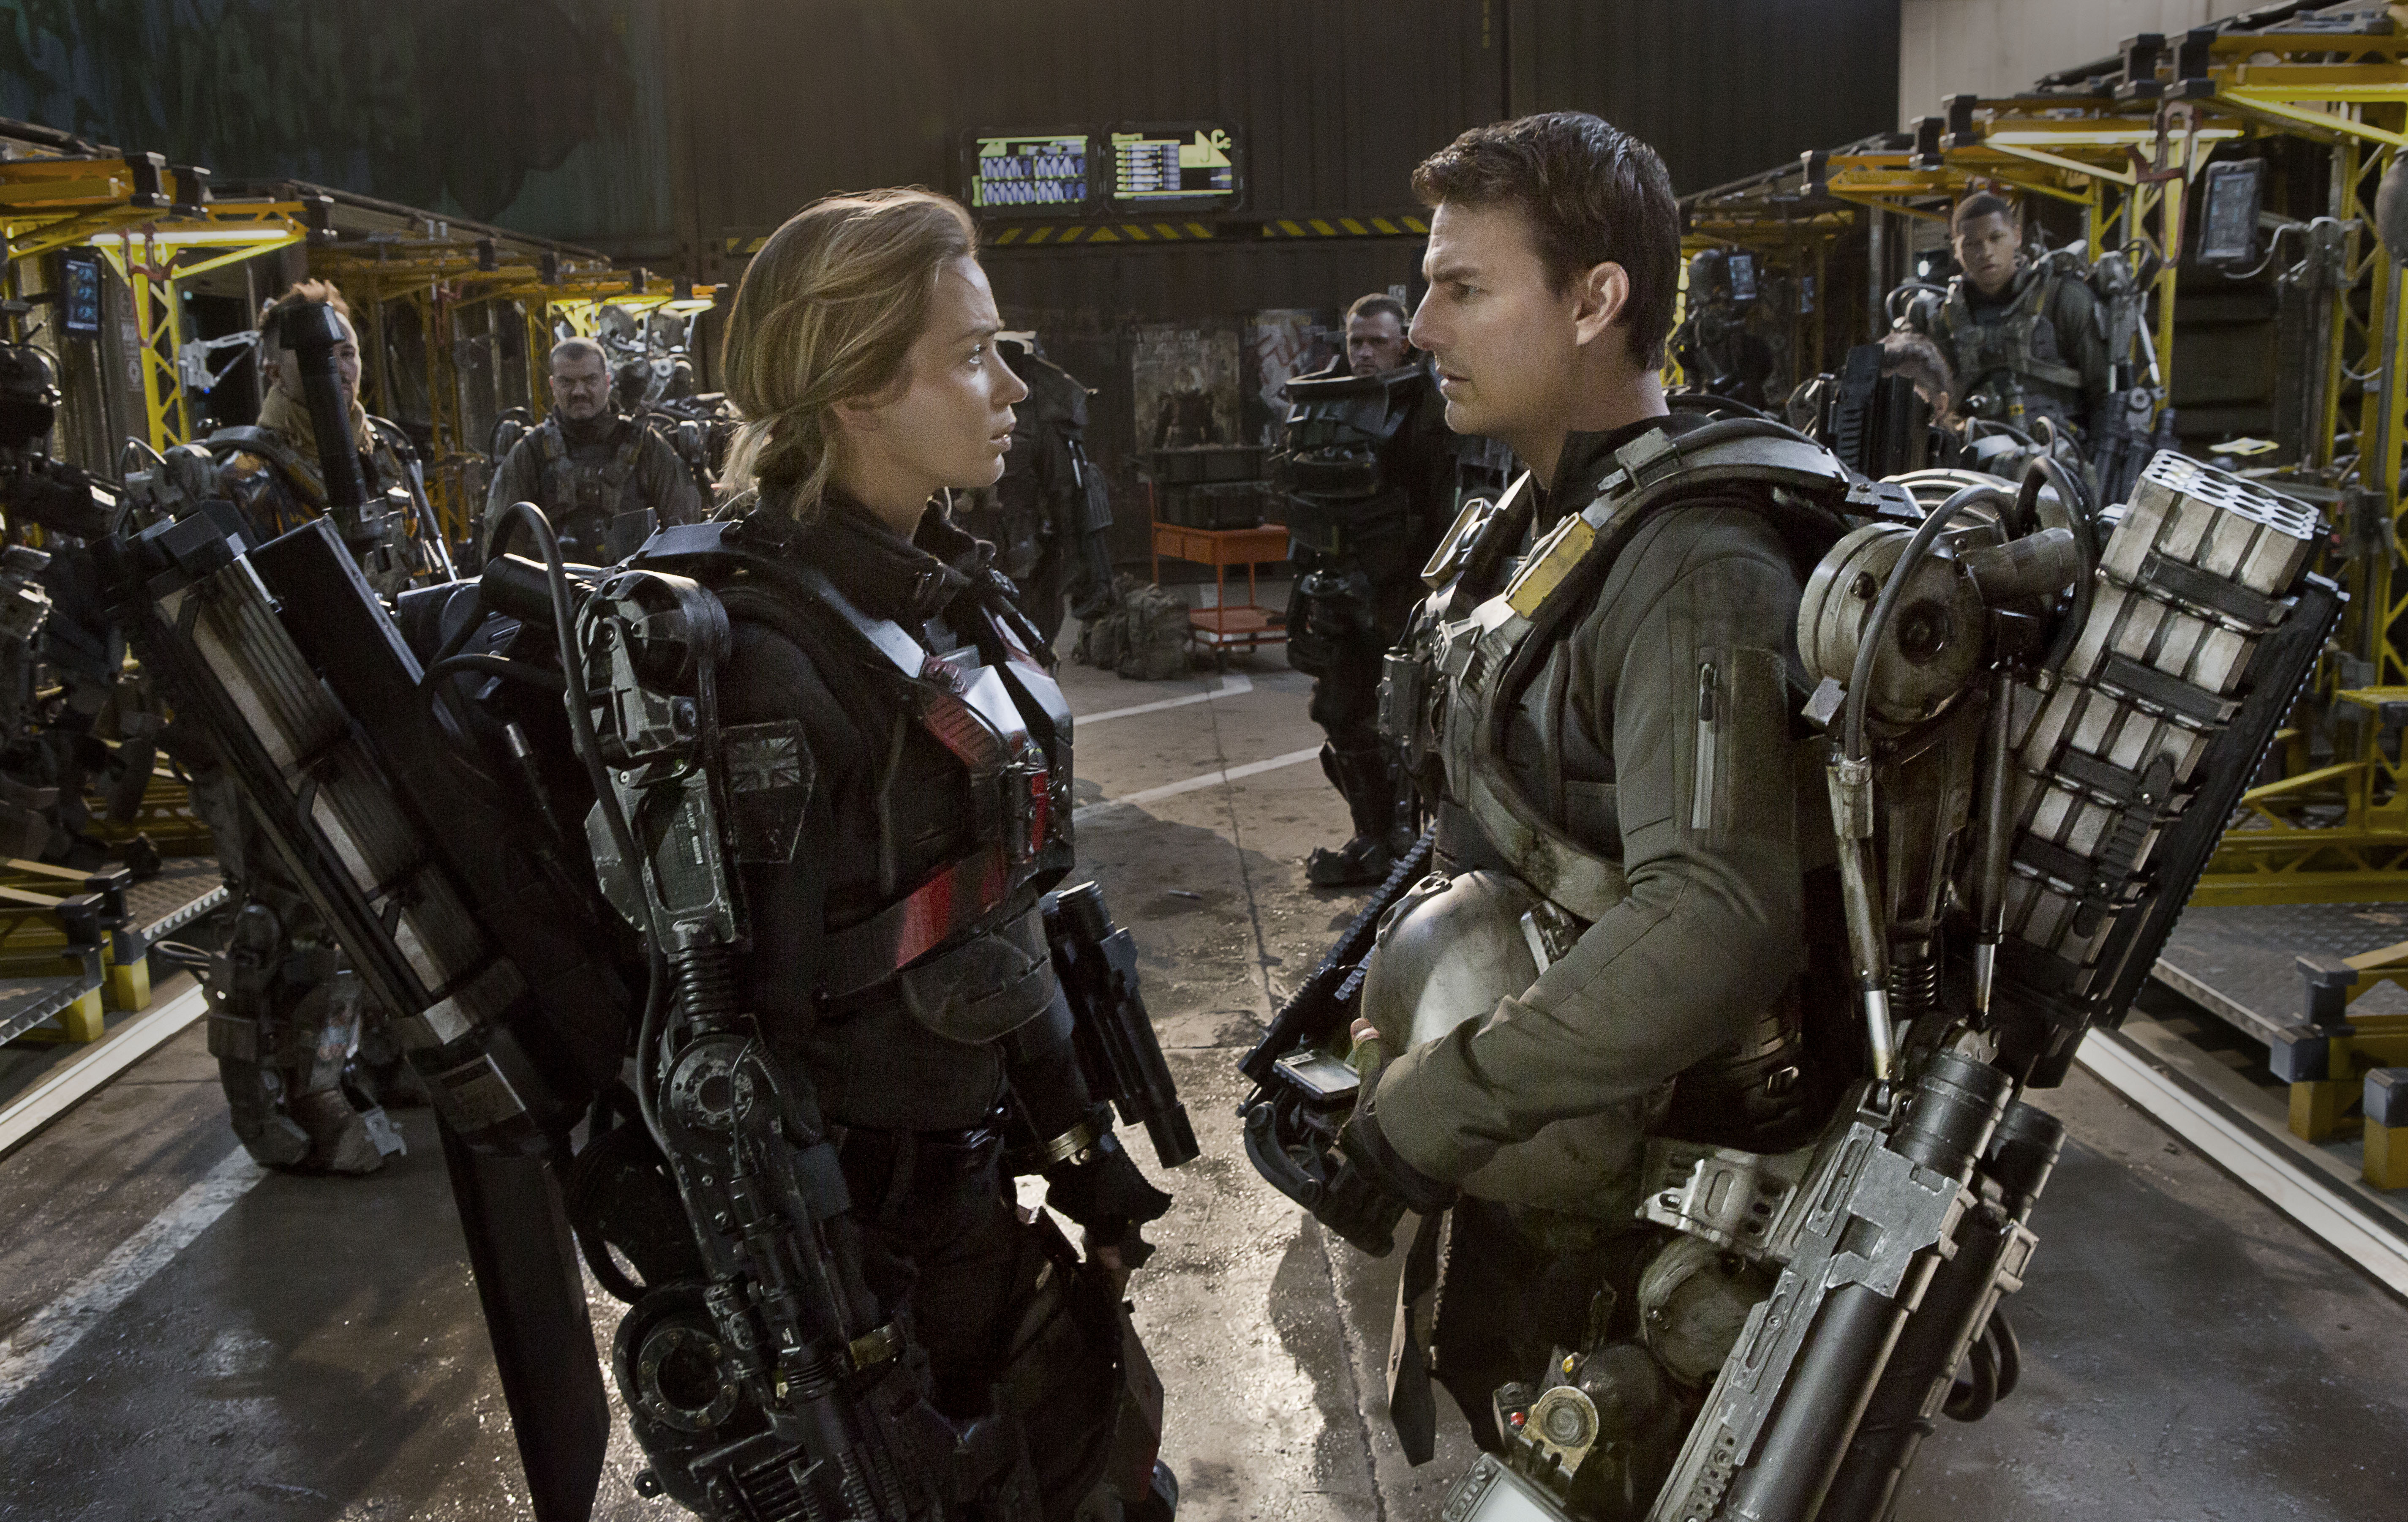 Edge of Tomorrow 2: Doug Liman Says Sequel May Be Next